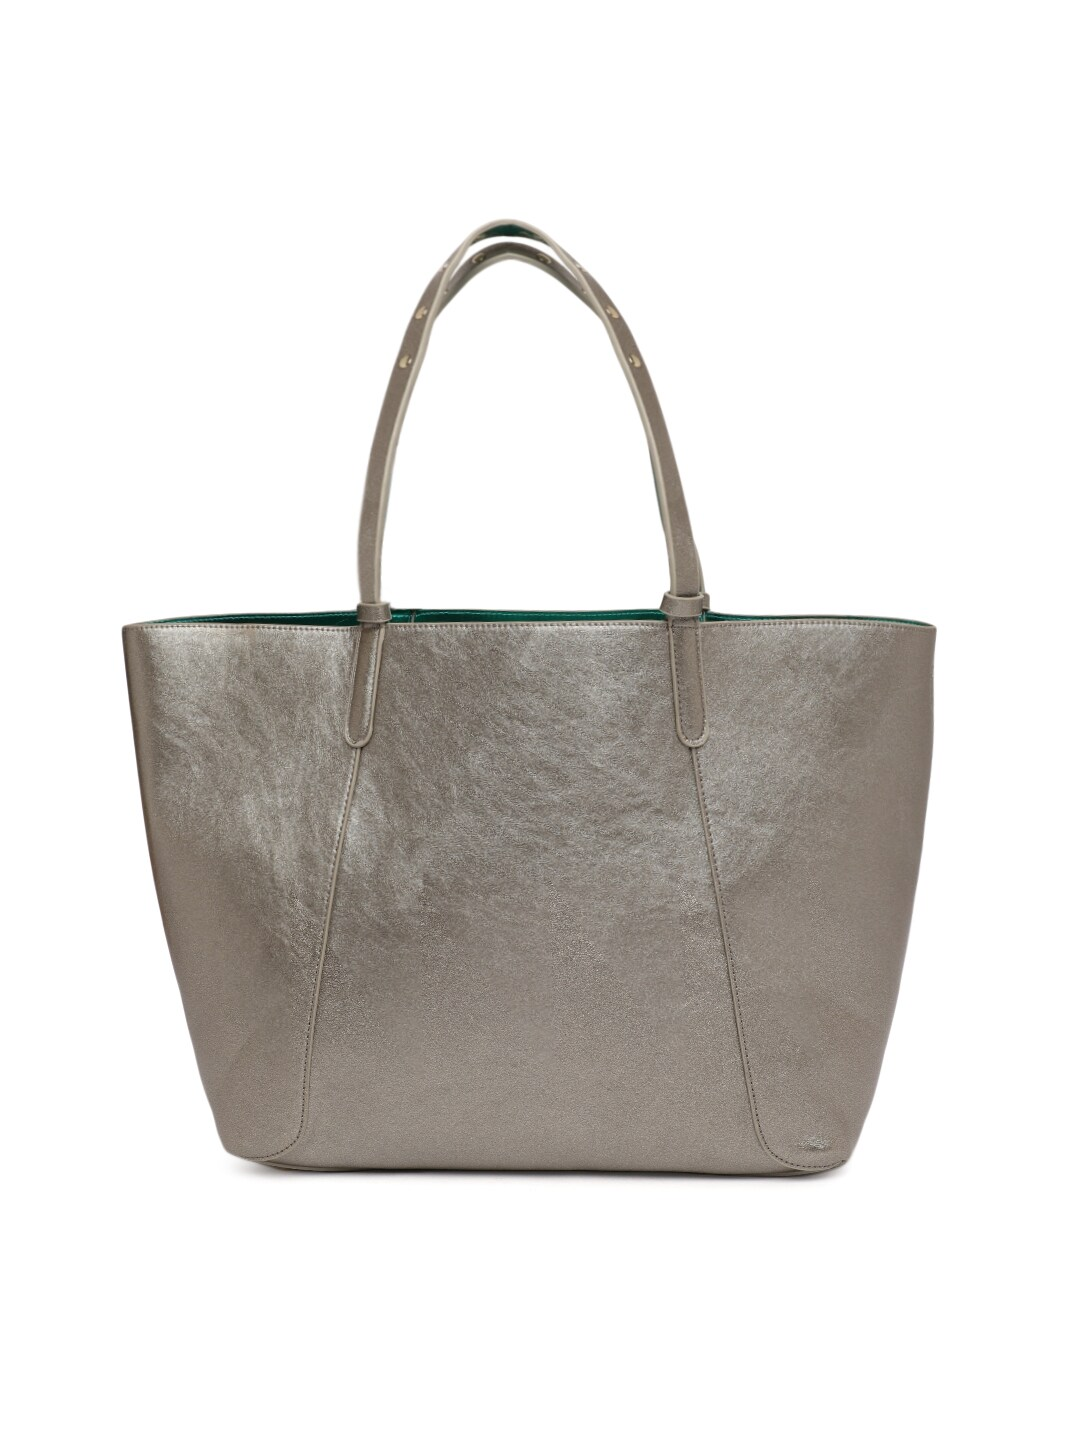 Tote Bag - Buy Latest Tote Bags For Women   Girls Online  d11f81829e67a